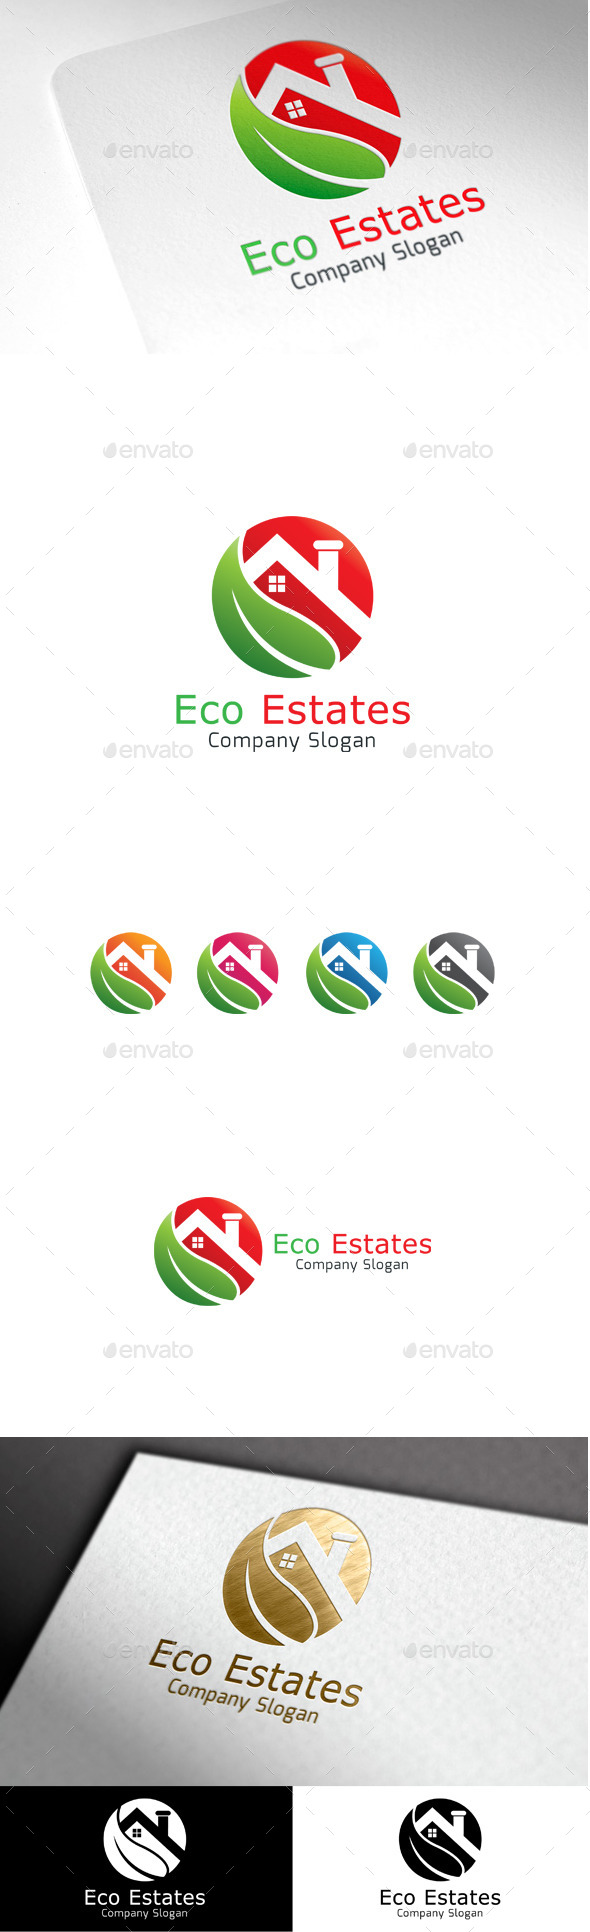 GraphicRiver Eco Estates 9999586